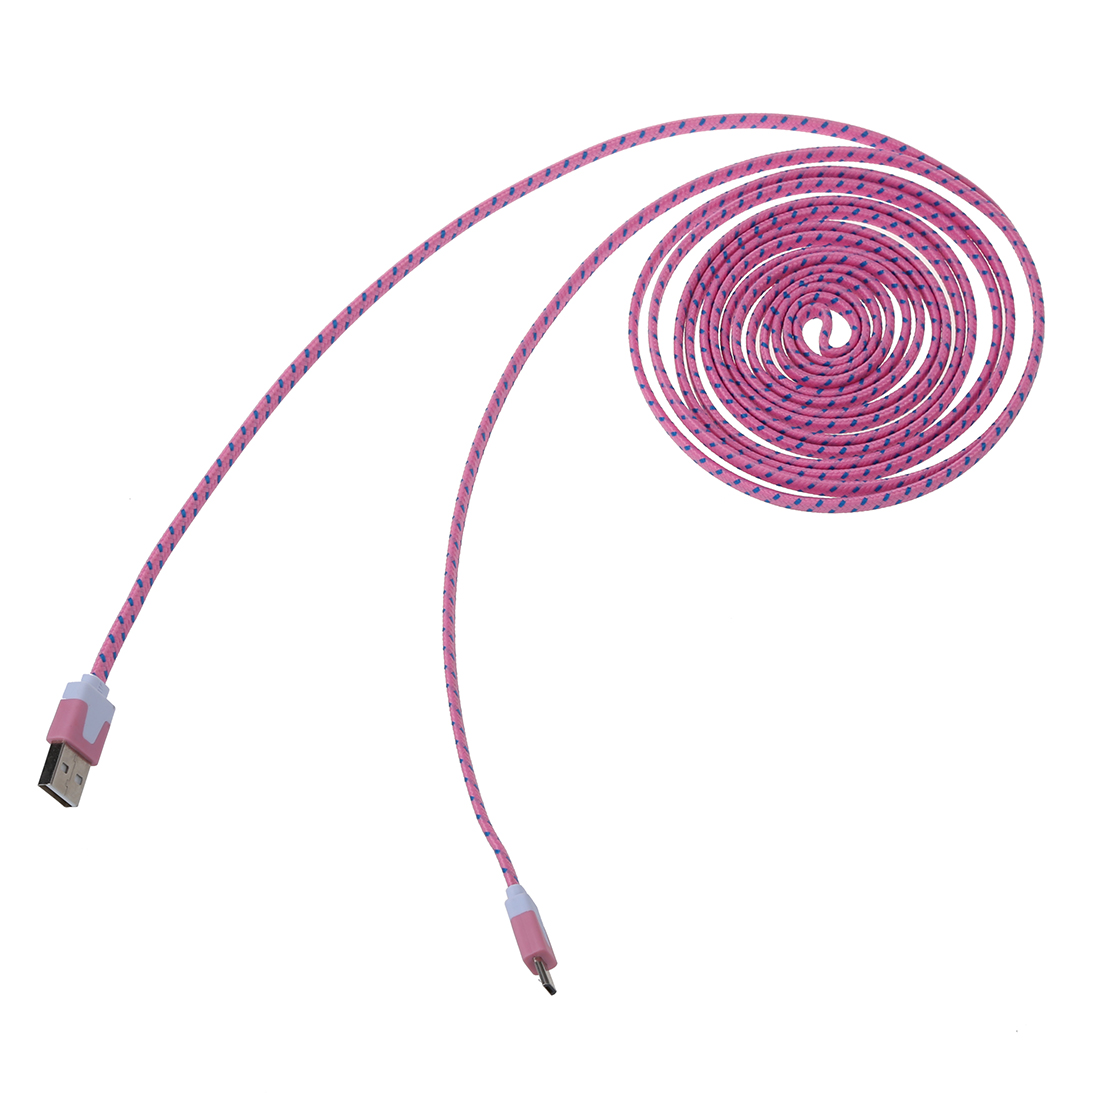 HFES 3M/10Ft Nylon net weave Micro-USB Data cable Pink ...